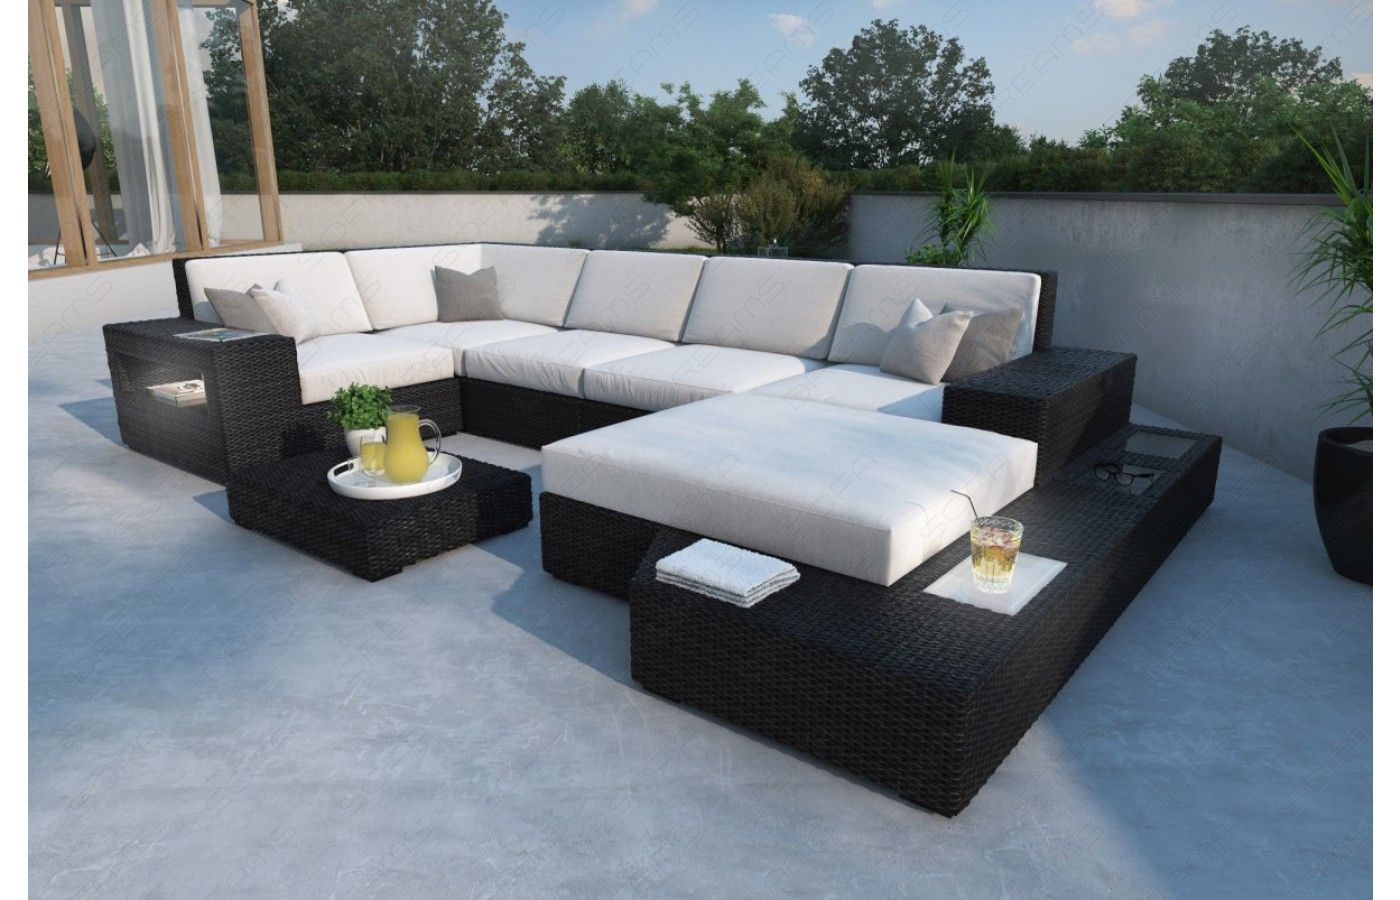 Rattan Sofa Messana U In 2020 Rattan Lounge Möbel